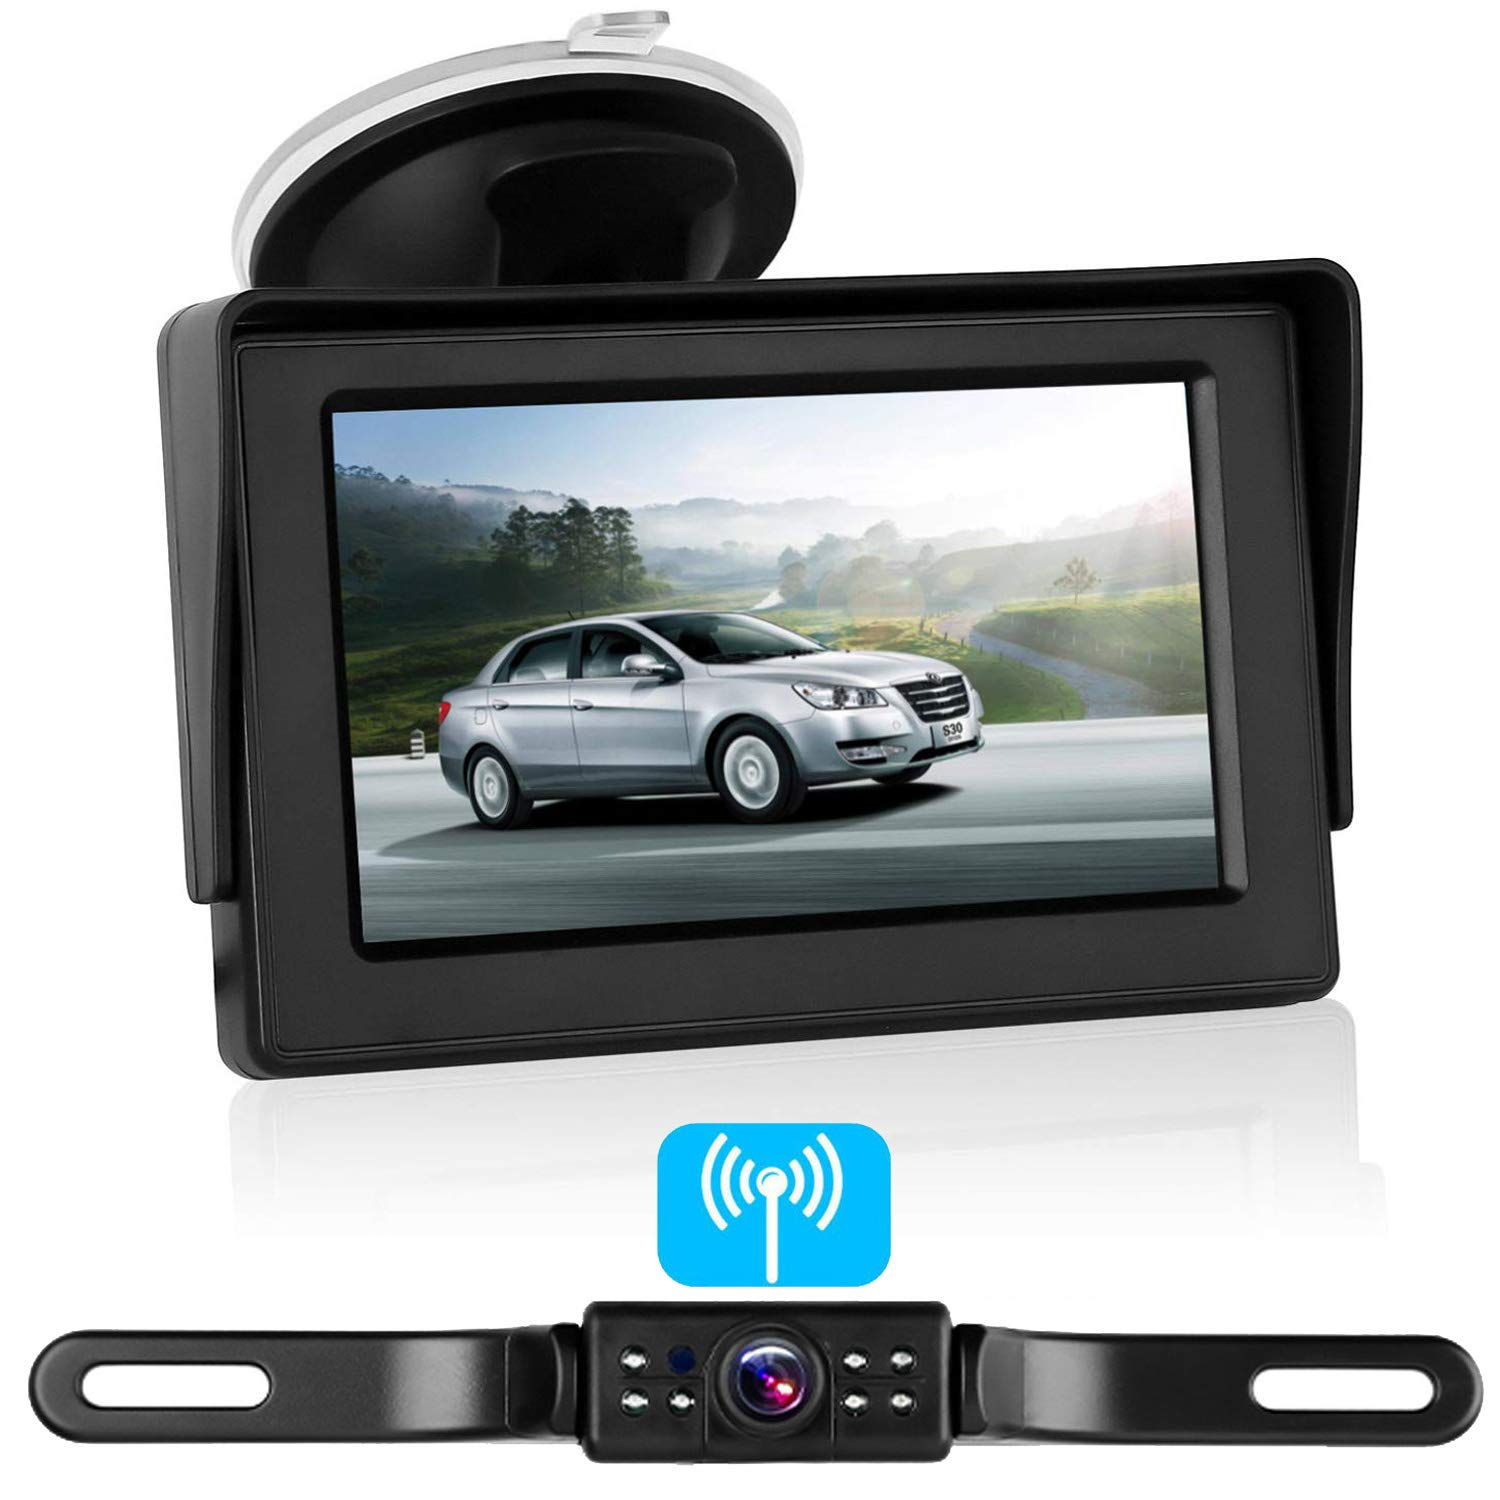 Emmako Backup Camera Digital Wireless and 4.3 Monitor Kit No Flickers for Car//RV//Truck//5th Wheel//Trailer Guide Lines ON//Off IP68 Waterproof Rear//Side//Front Facing View System Reverse//Driving Use 4350449856